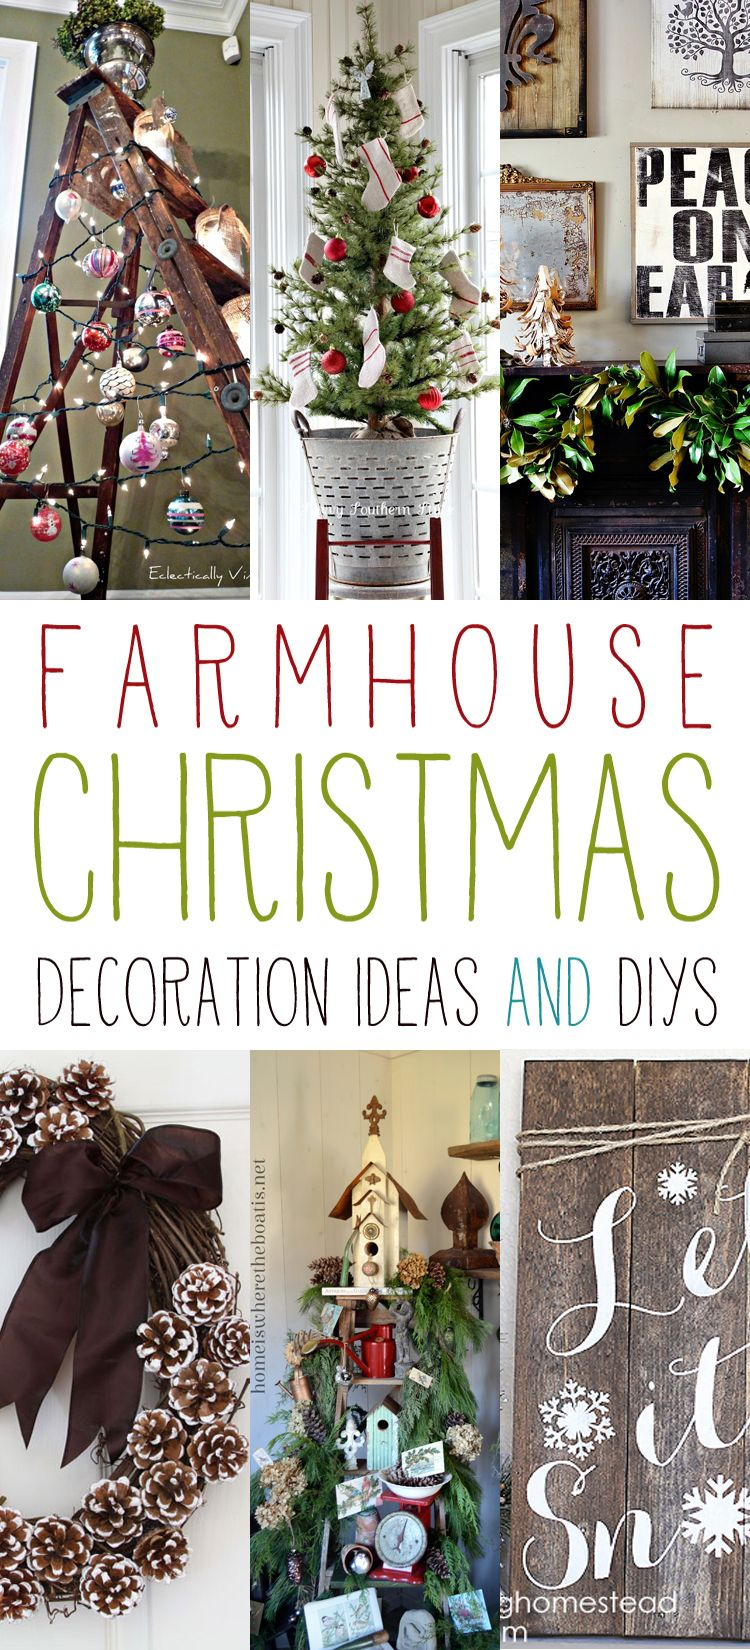 Farmhouse Christmas Decoration Ideas and DIYs | Diys, Decoration and ...